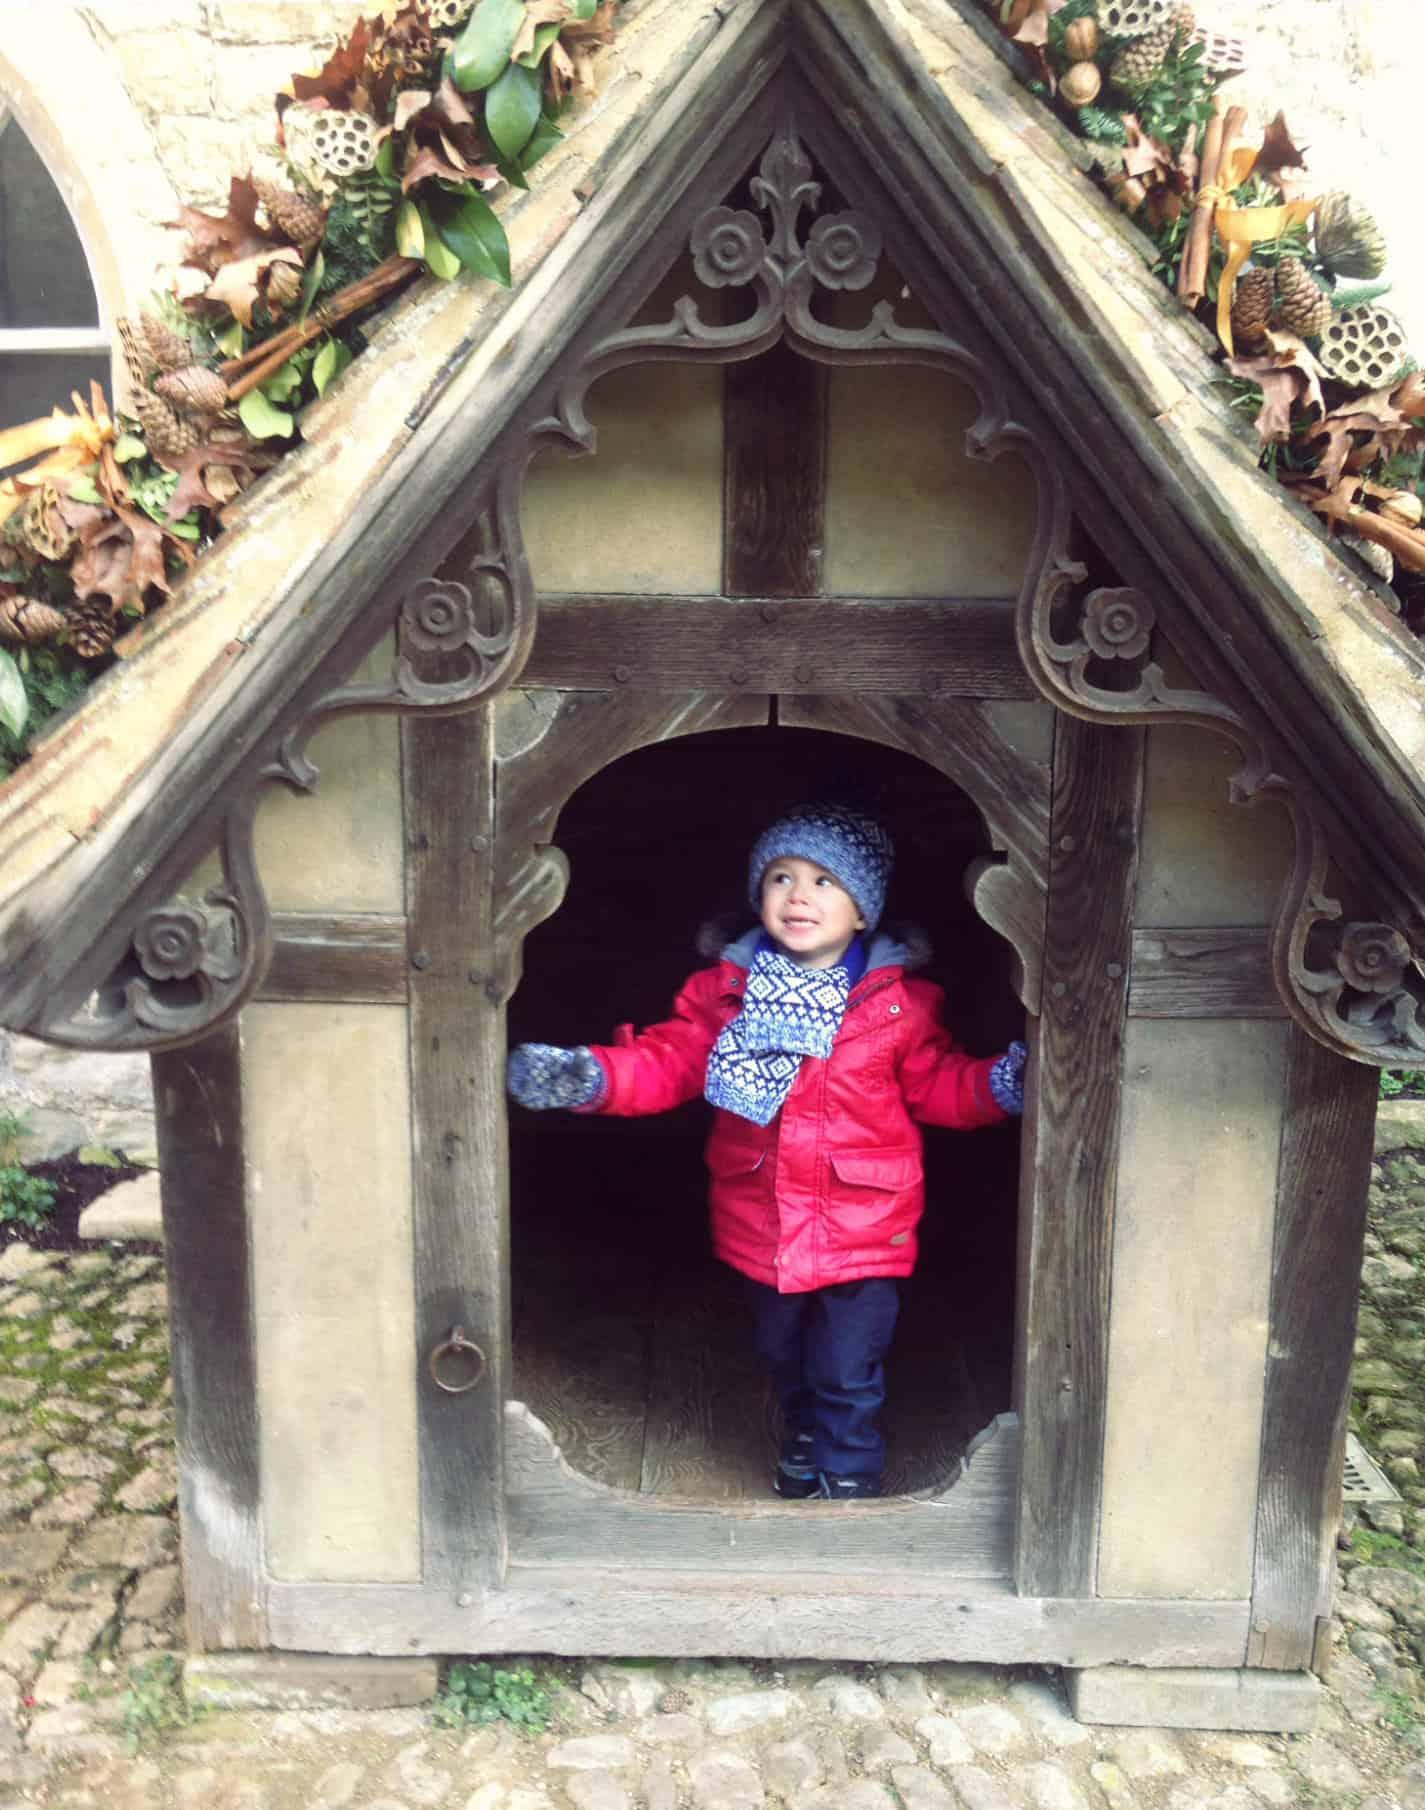 Dog Kennel at Ightham Mote | My Travel Monkey